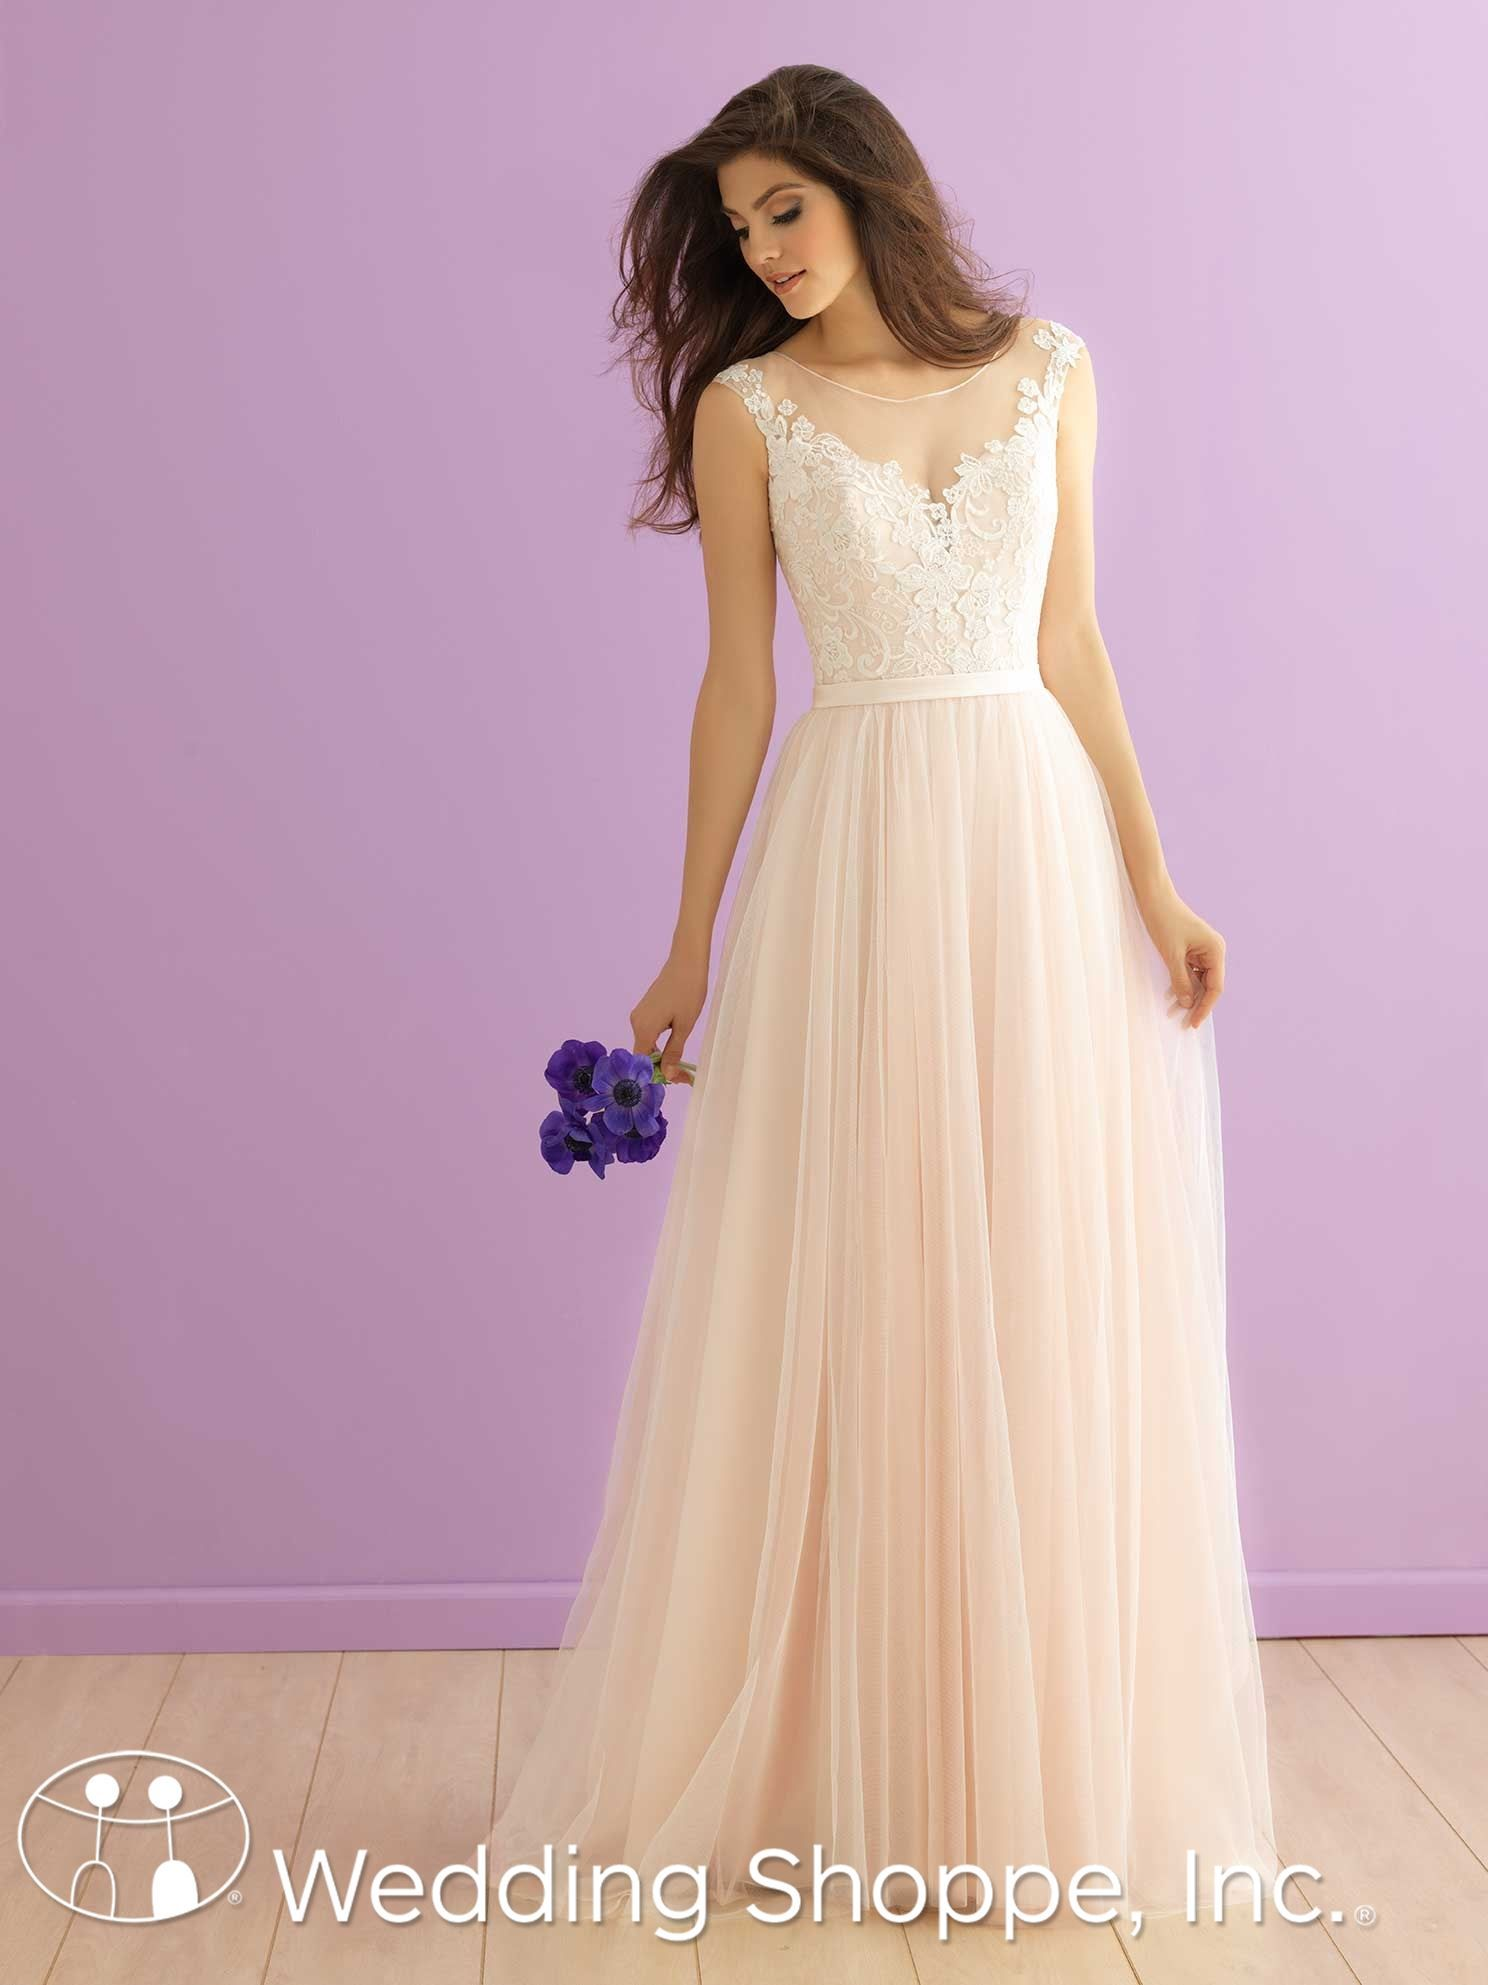 Size 32 wedding dress  A romantic and ethereal tulle wedding dress with cap sleeves  The